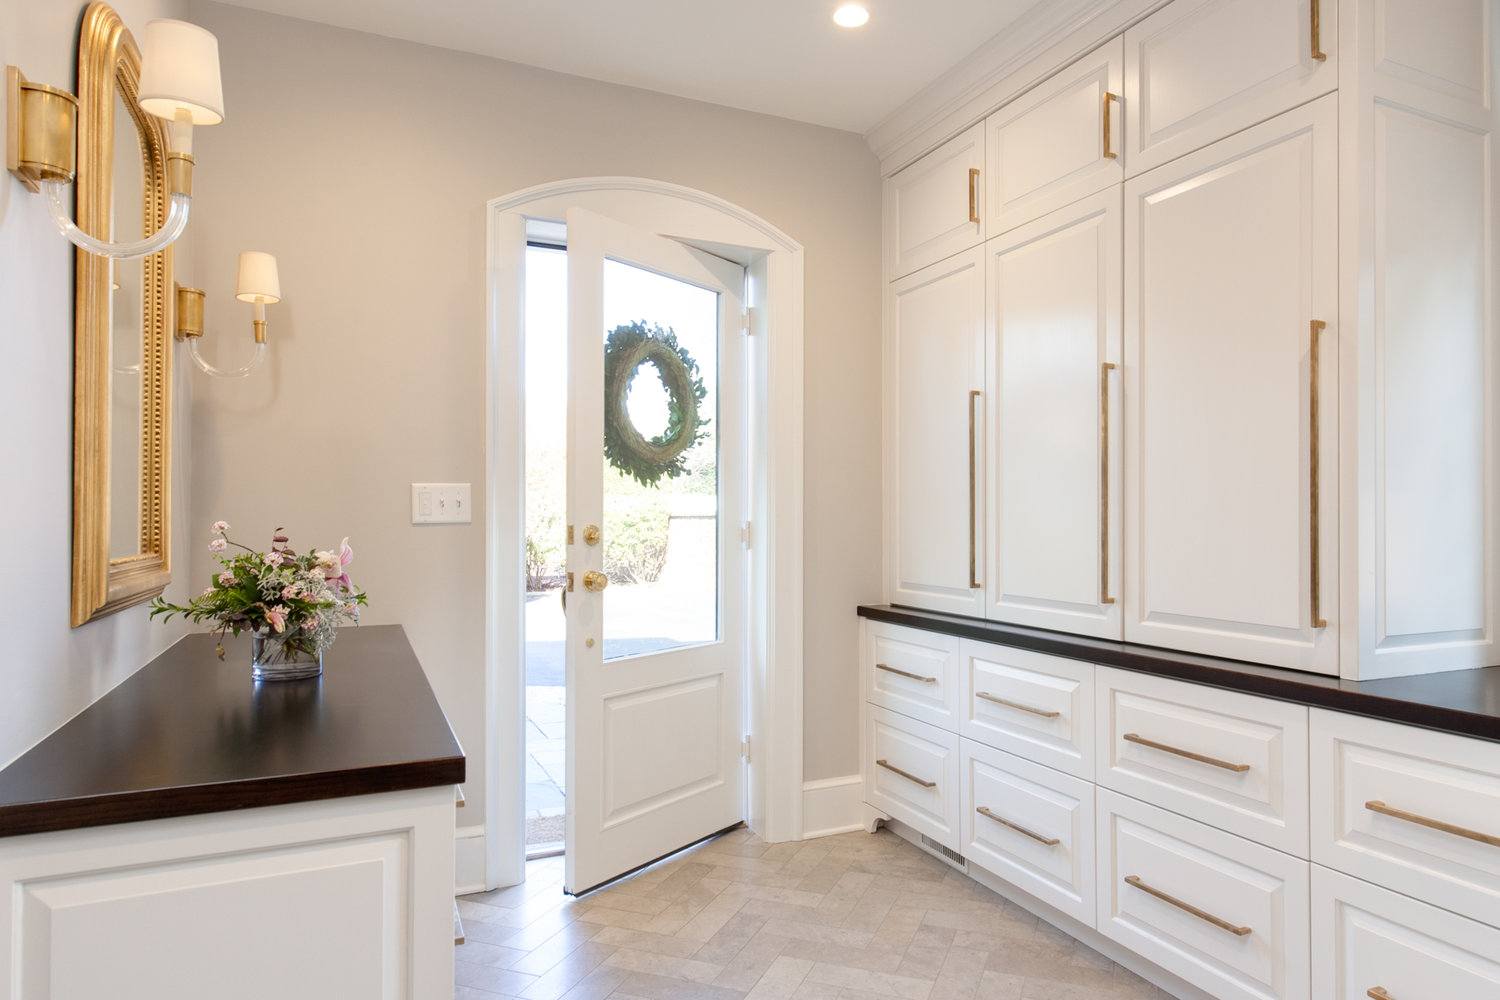 Entry with stylish storage cabinetry